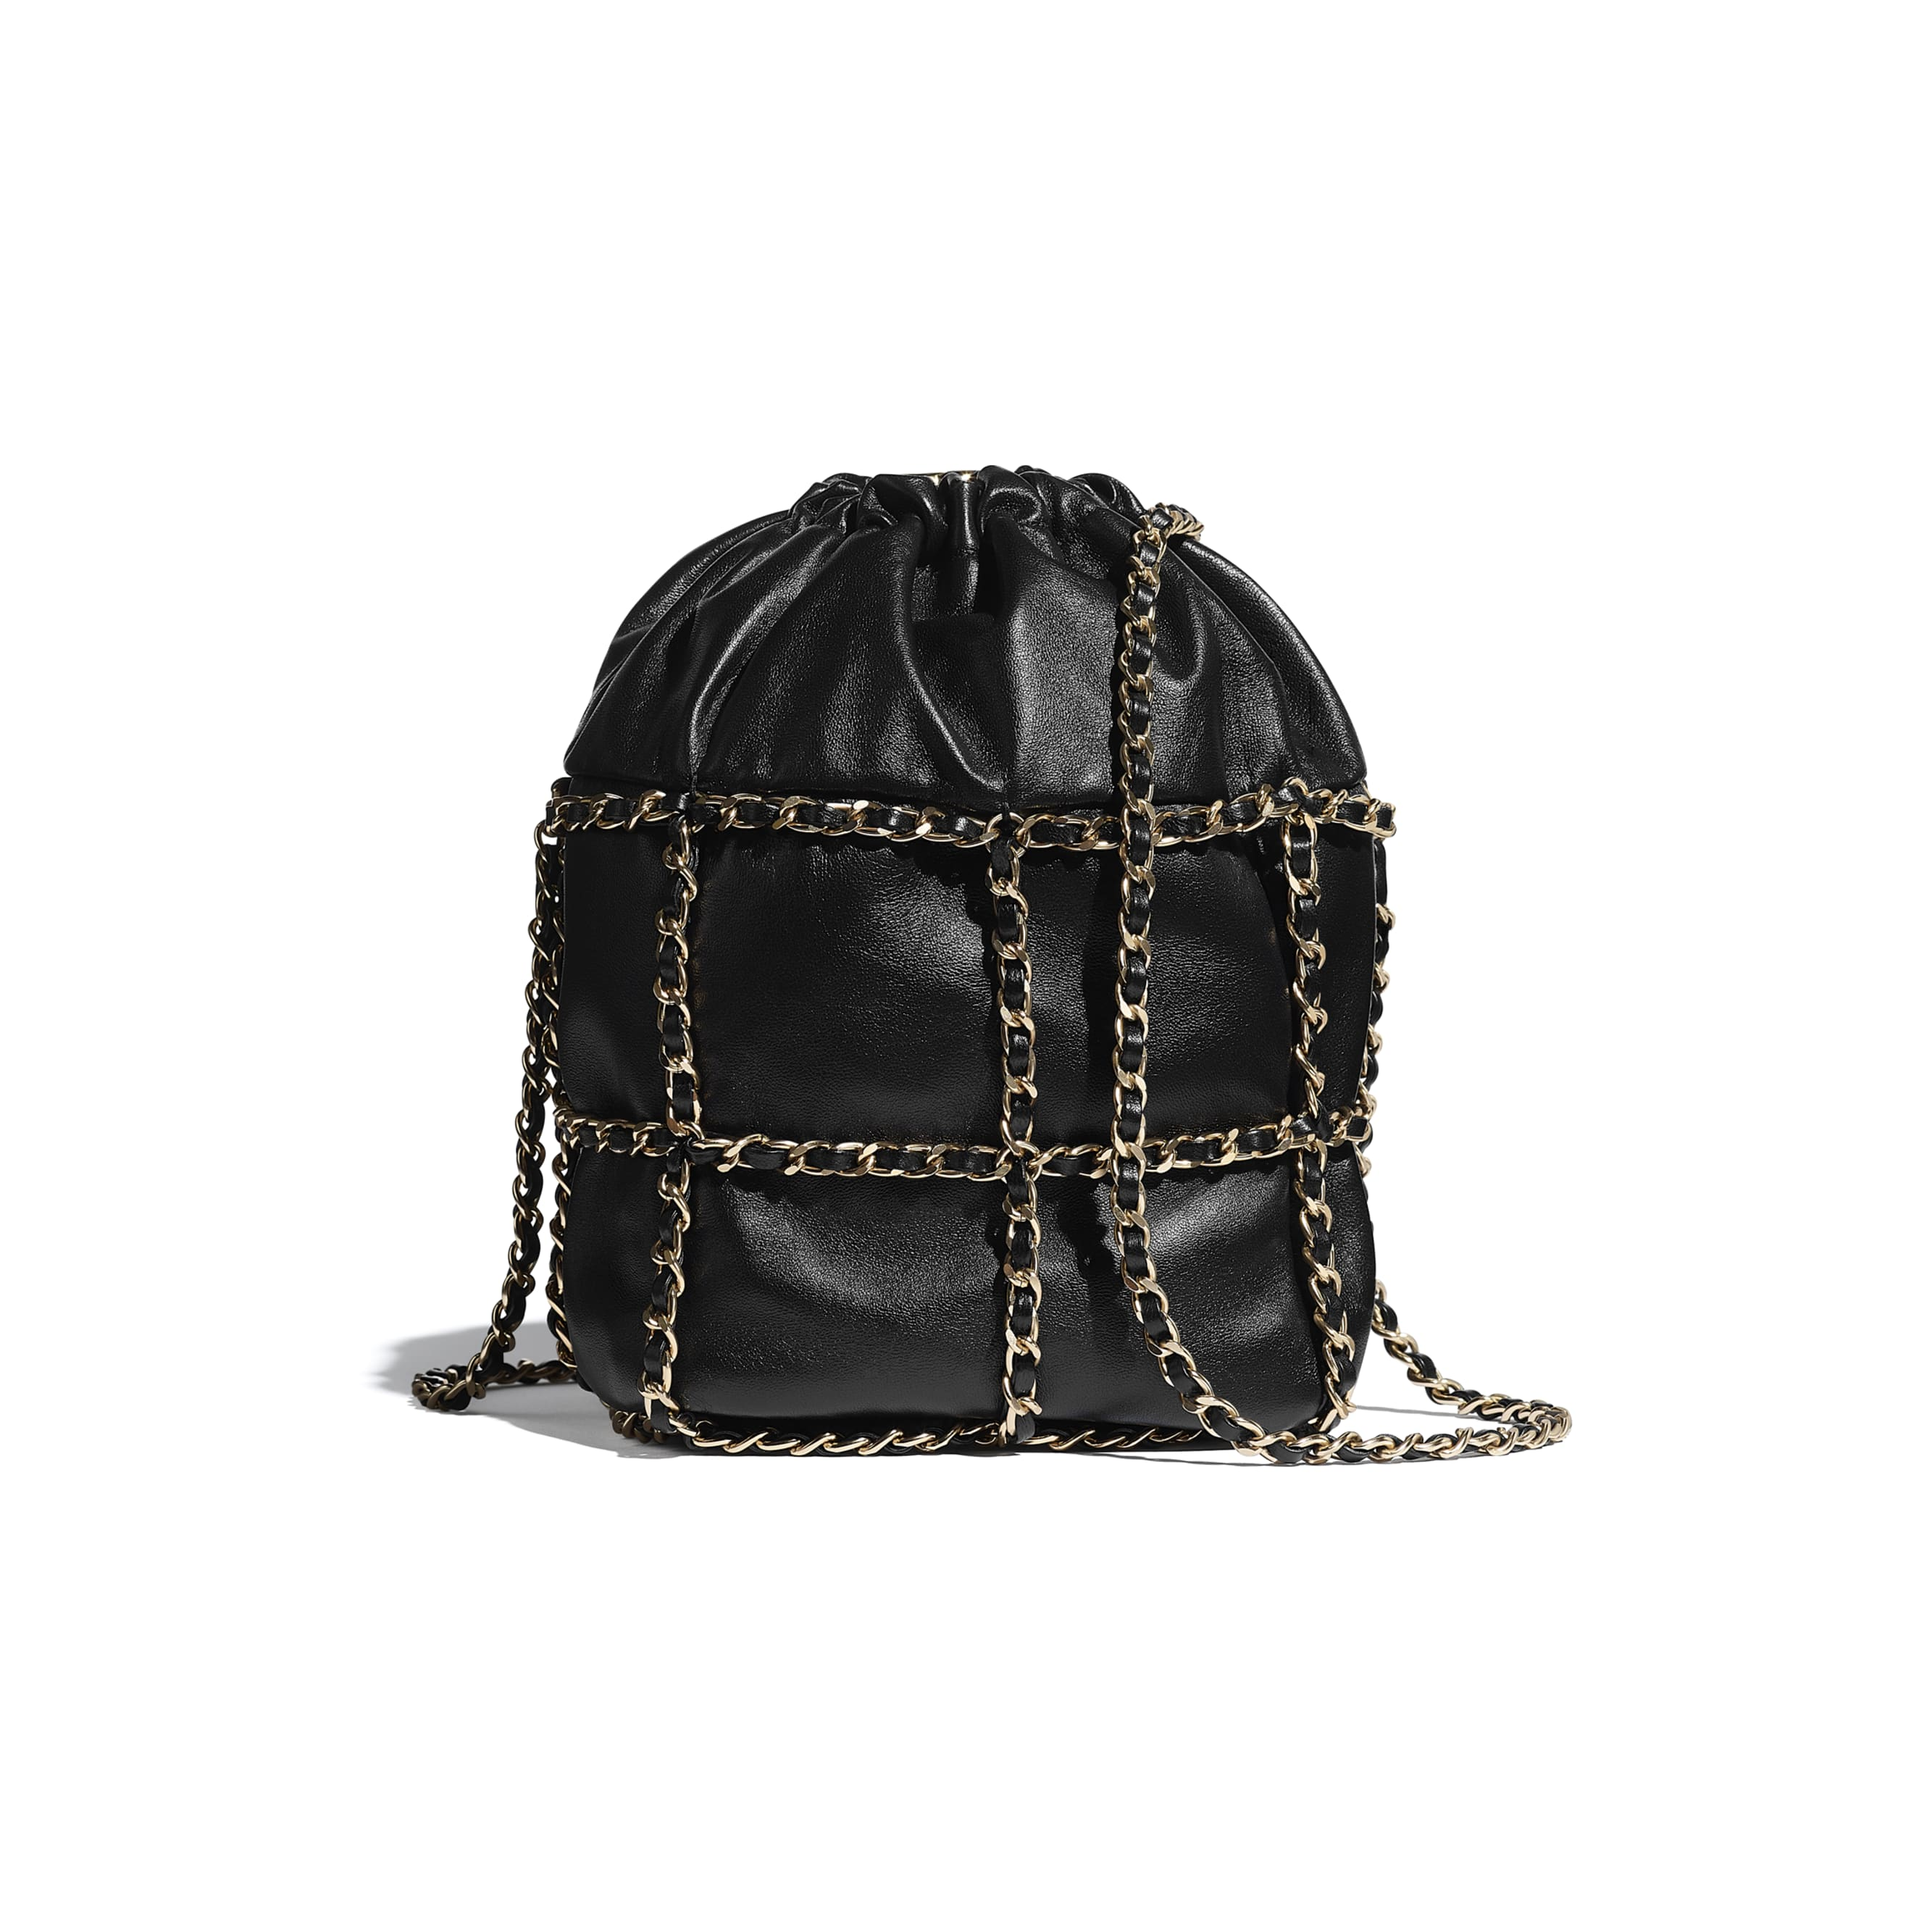 Drawstring Bag - Black - Lambskin & Gold Metal  - CHANEL - Alternative view - see standard sized version